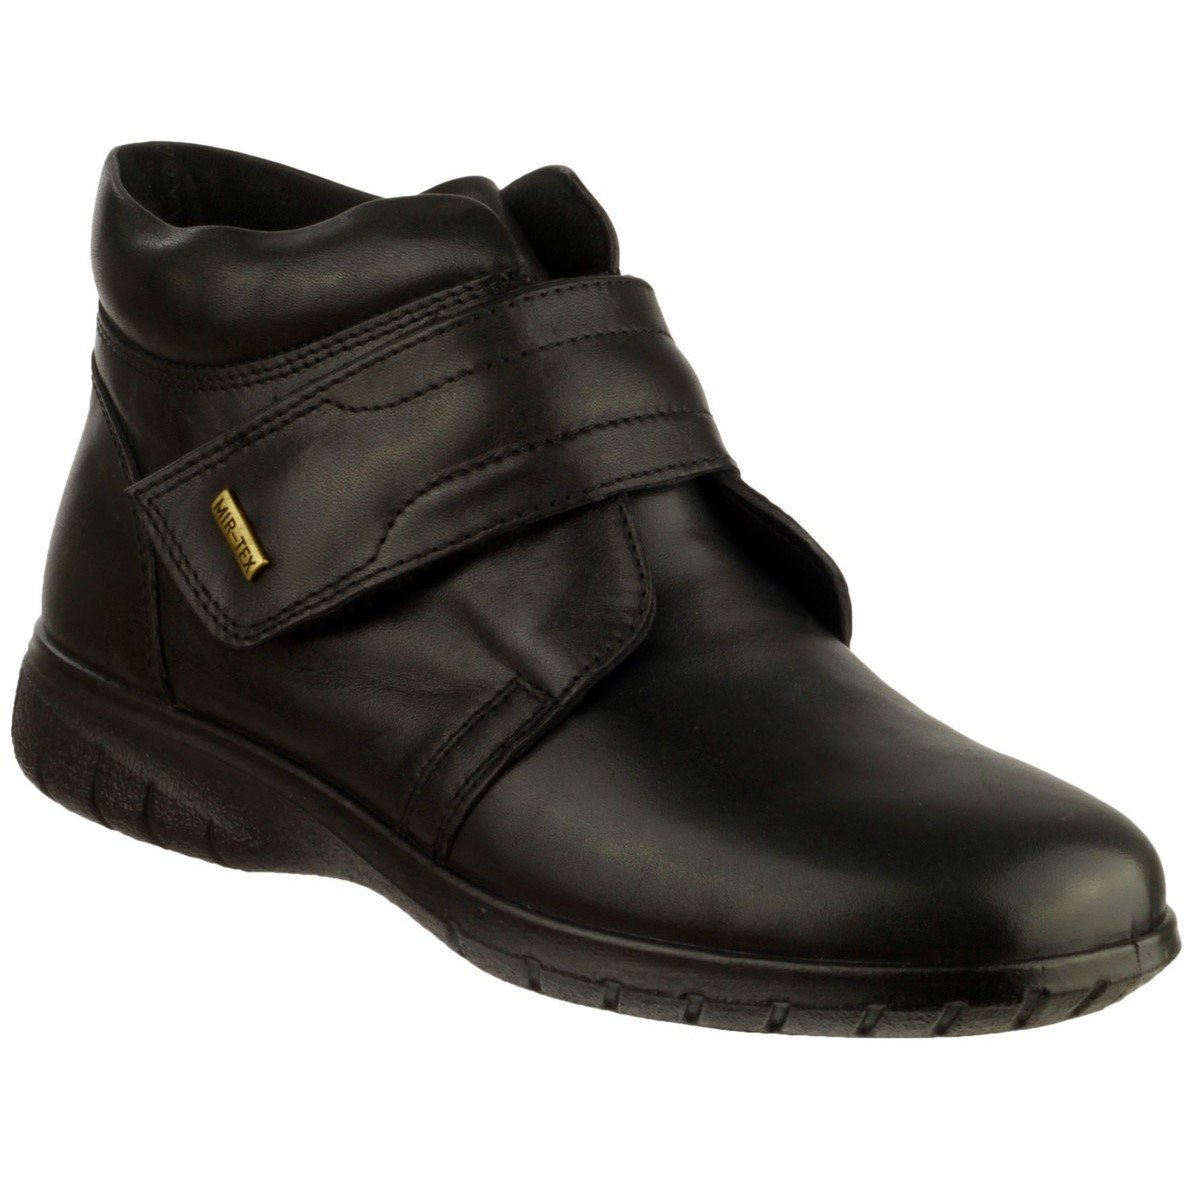 Cotswold Women's Chalford 2 Ankle Boot Various Colours 32977 - Black 8